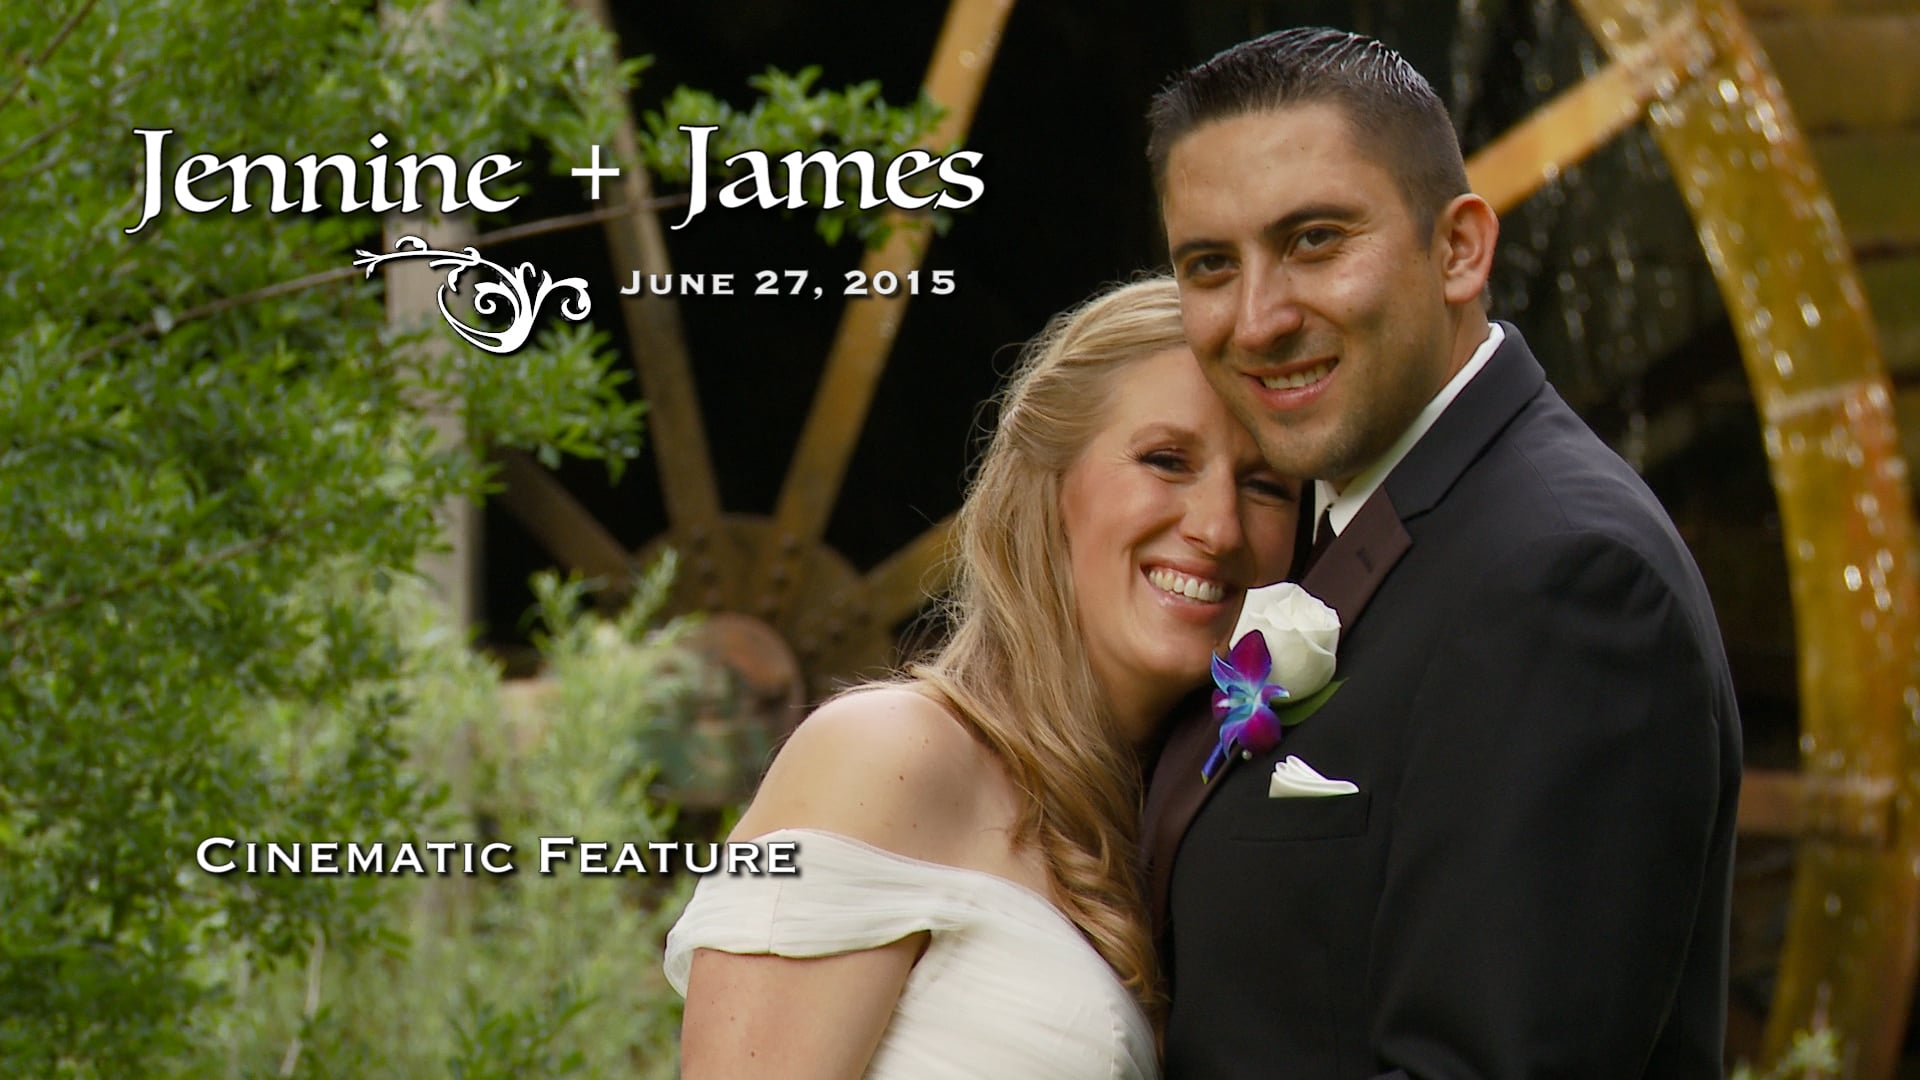 Jennine and James Wedding Feature